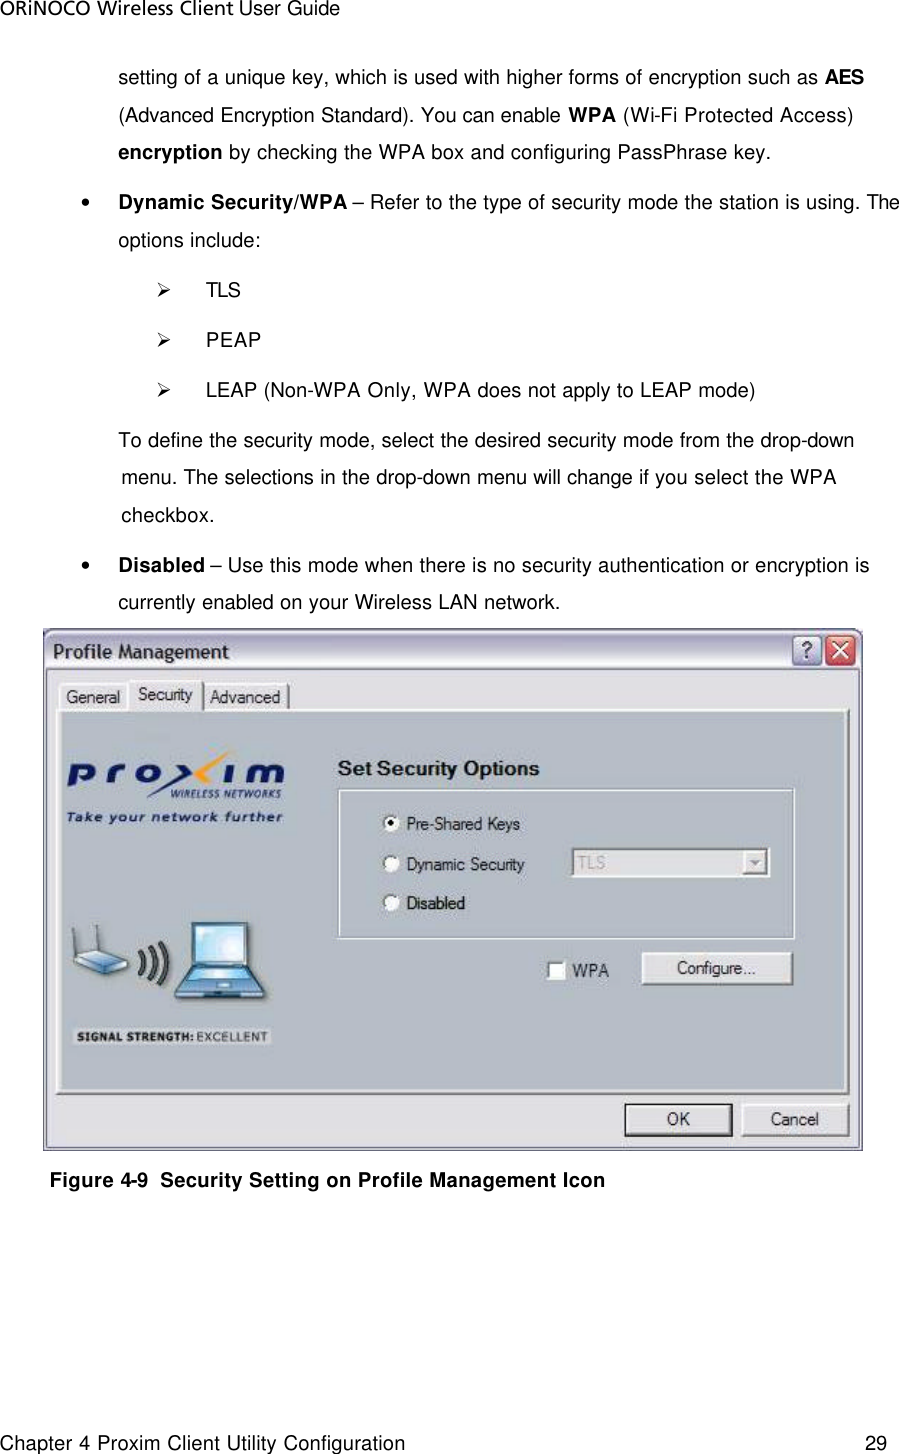 ORINOCO WIRELESS LAN PC CARD WPA DRIVER WINDOWS 7 (2019)